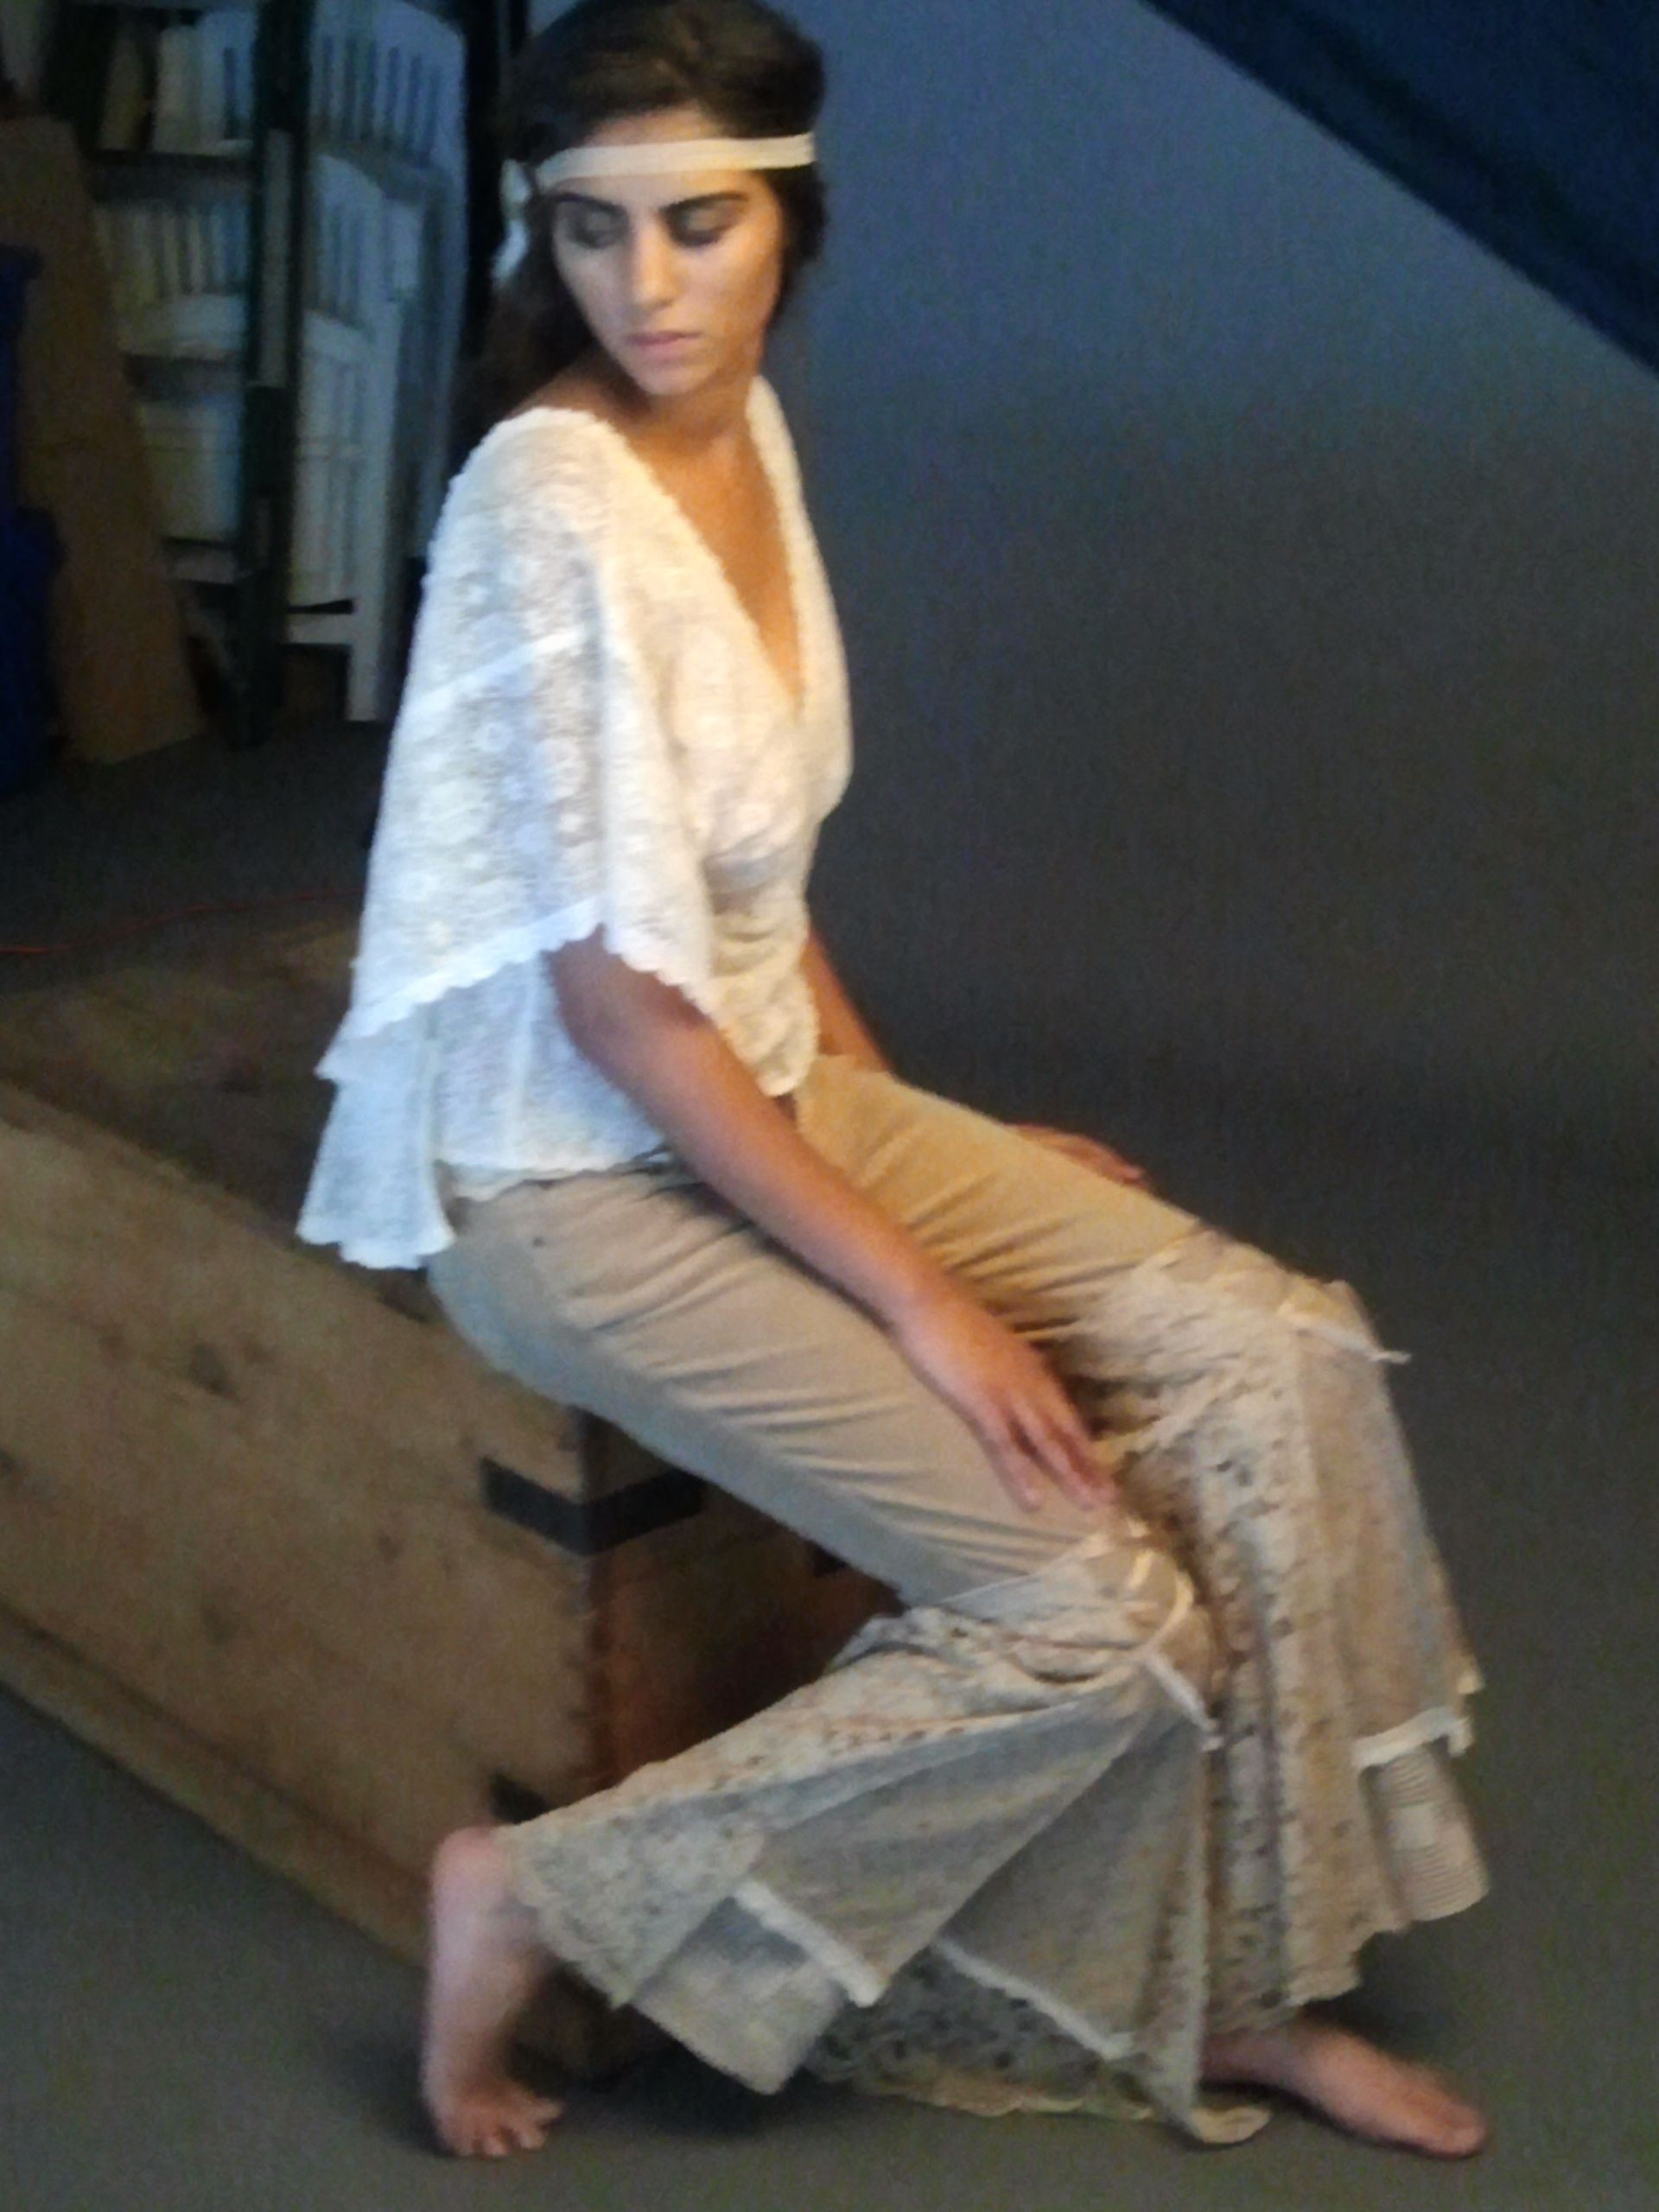 Lace top was a lace table cloth. Flared pants were recycled